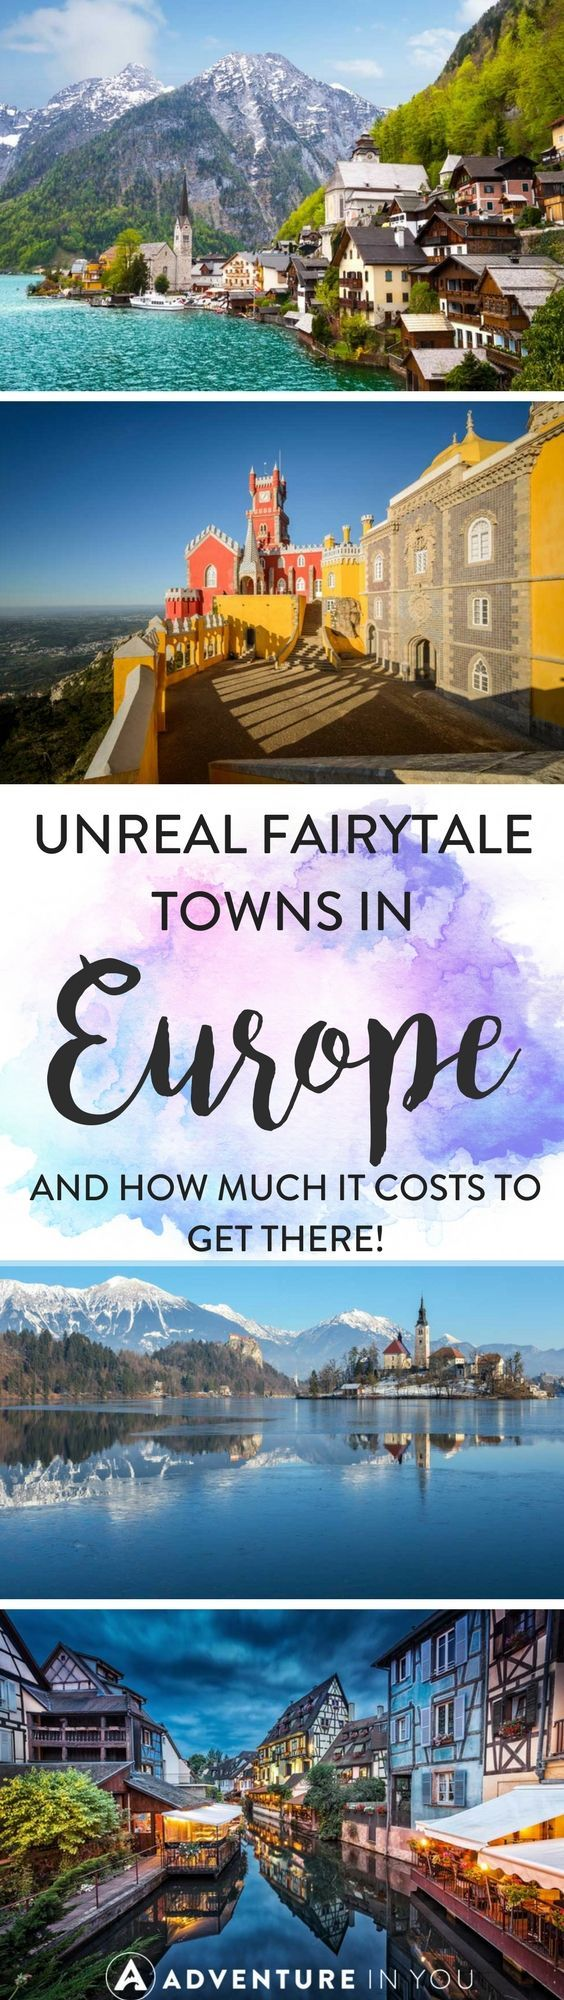 Europe Travel | Looking for some inspiration for a trip to Europe? Here are a few unreal fairytale looking towns that you have to visit during your next trip to Europe